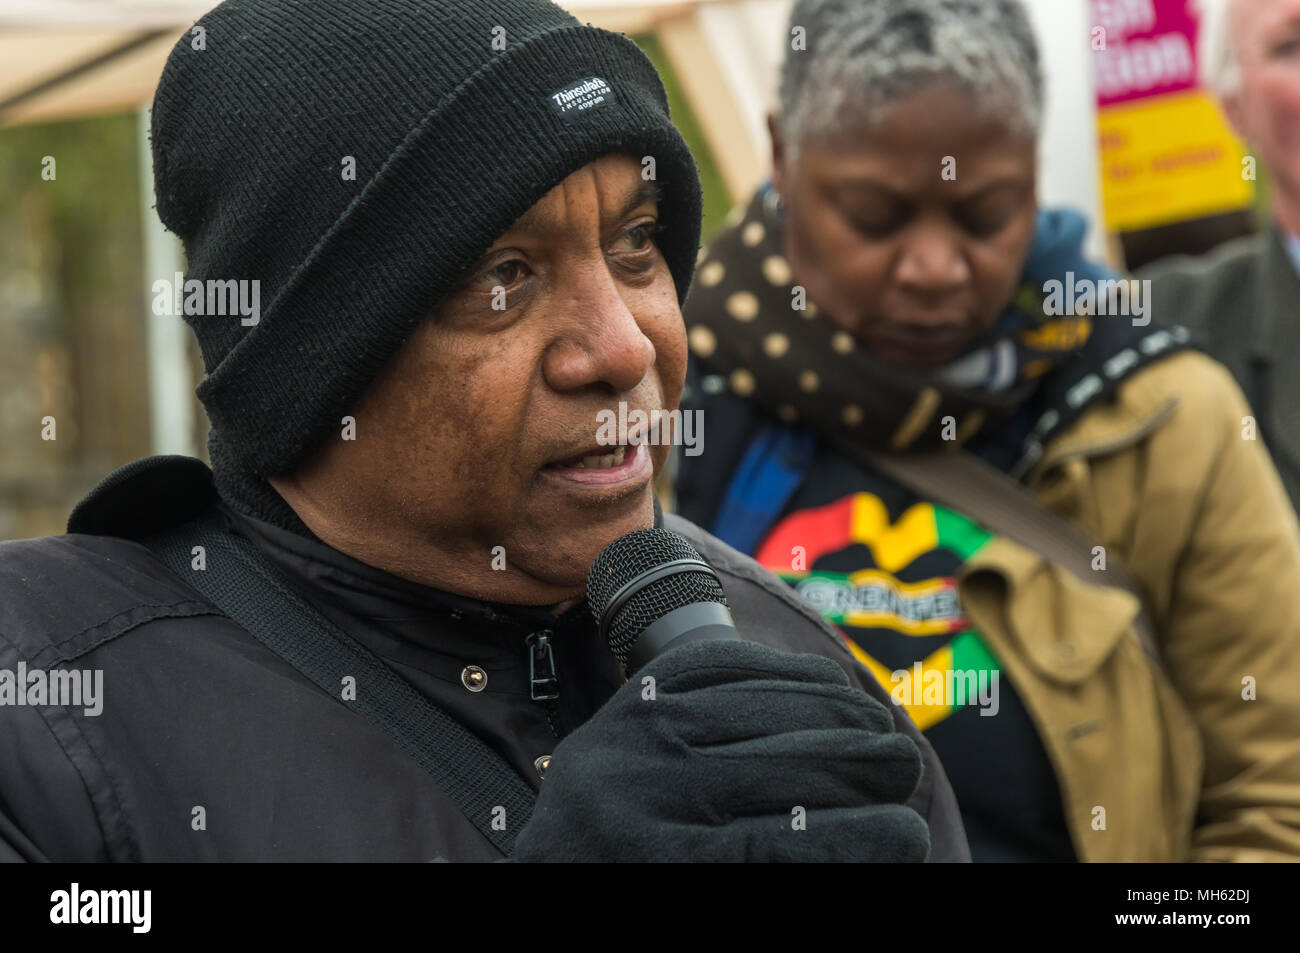 London, UK. 30th April 2018.  Smokey, one of the organisers of the Notting Hill Carnival who is fighting Kensington and Chelsea council to retain community control of the annual event speaks at the protest in support of the petition calling for an end to the deportations of migrants in the 'Windrush generation' who arrived in Britain between 1948 and 1971. It calls on the government to change the burden of proof which means they are now required to prove their right to remain, and to provide compensation for any loss and hurt.. Most of those who have been deported, threatened with deportation  - Stock Image